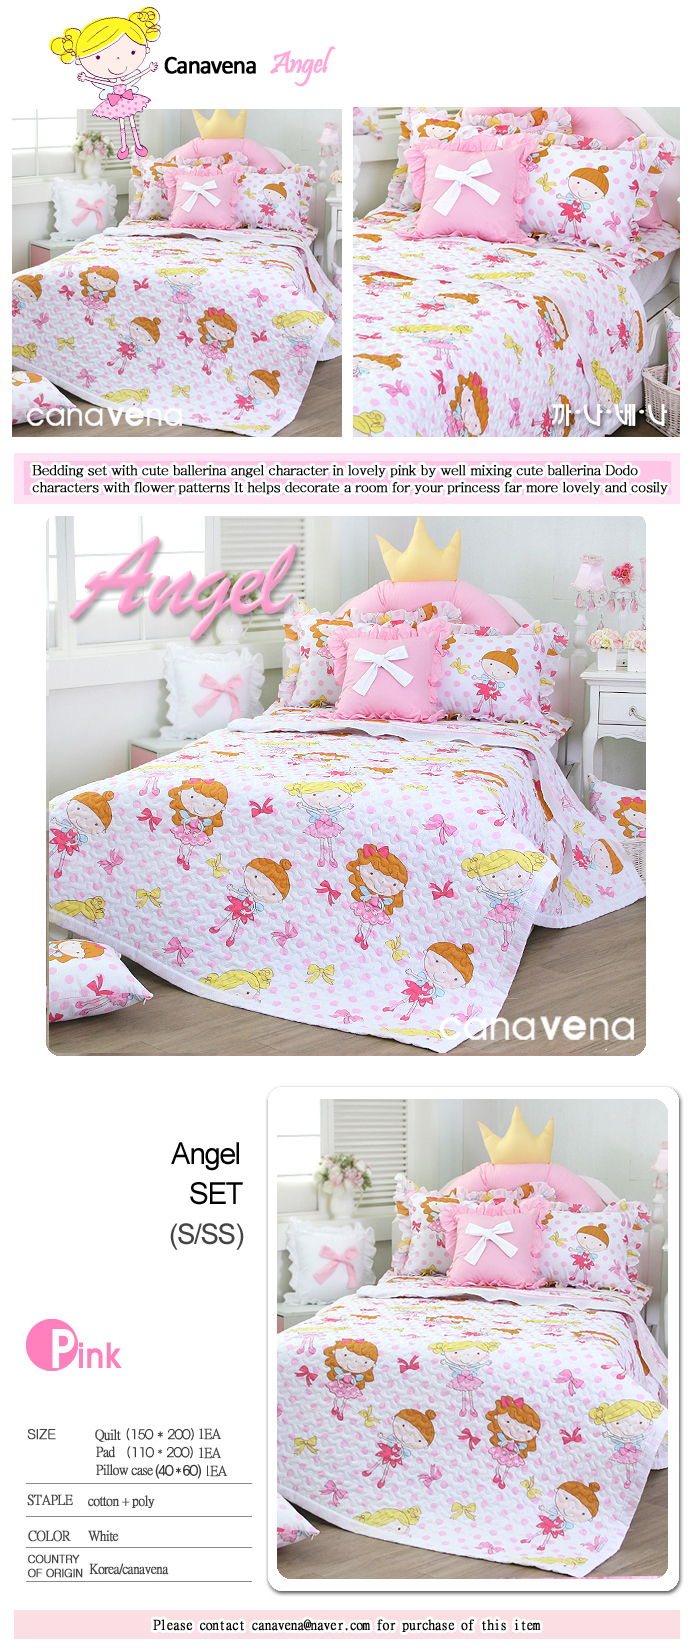 Canavena Childrens Bedding And Accessories